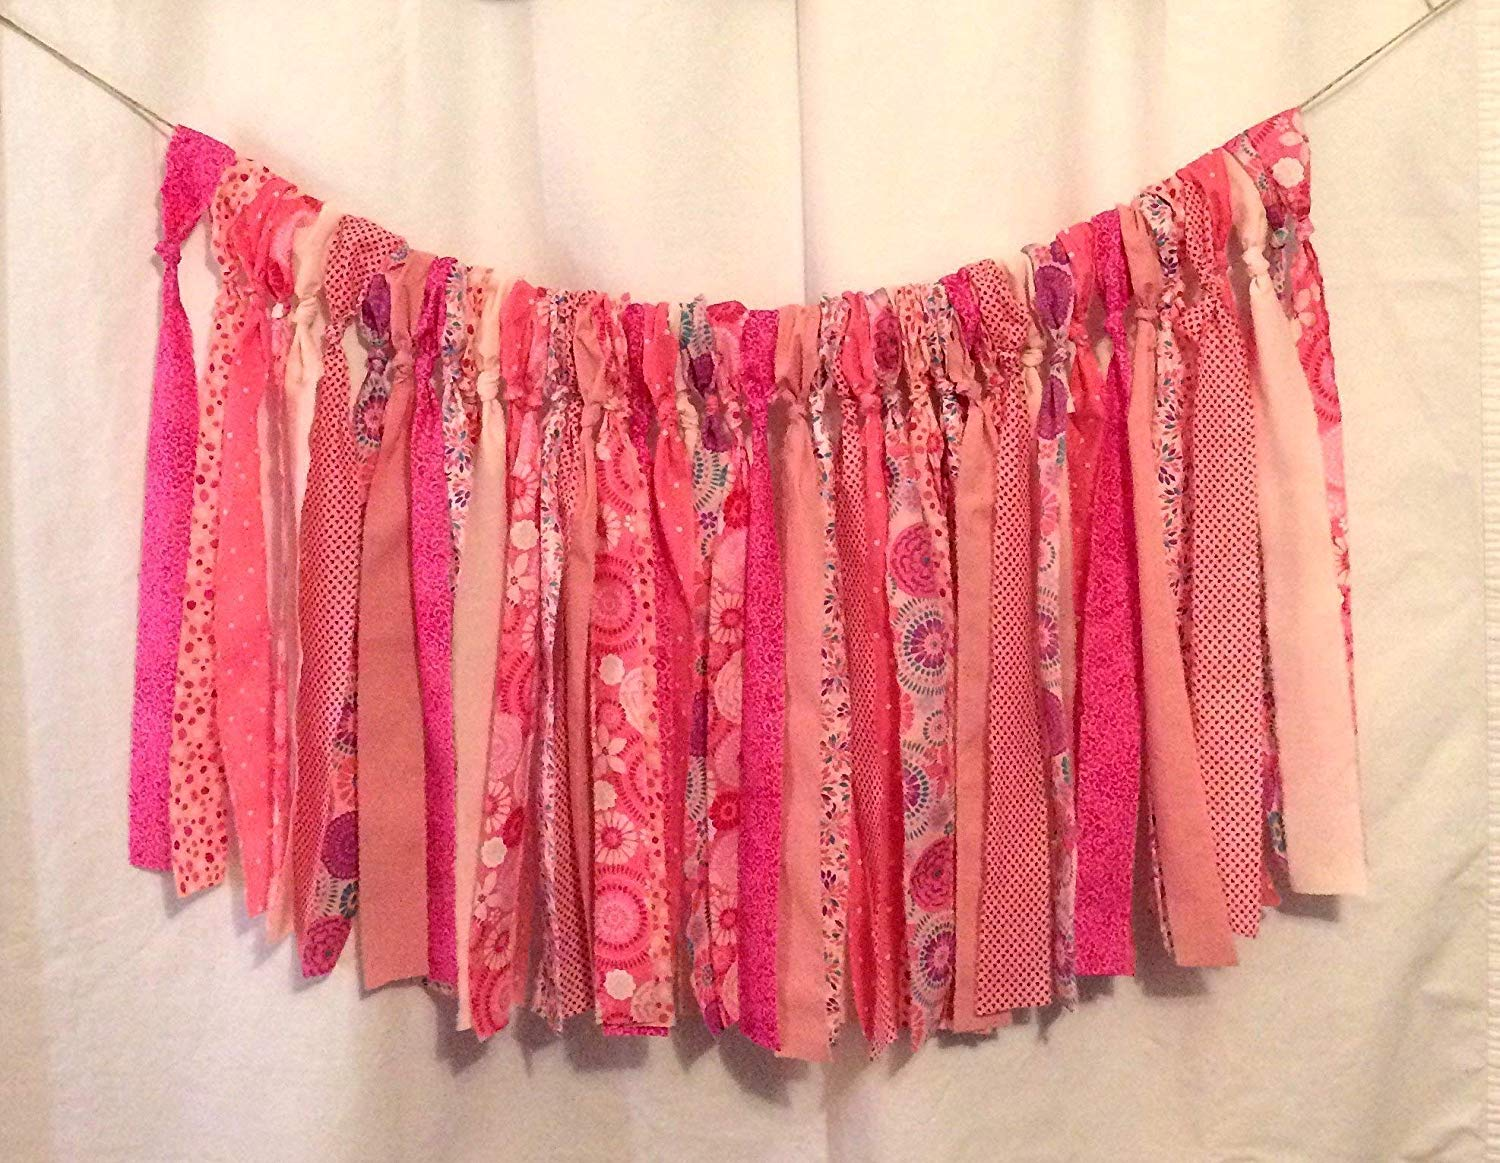 Pink Hippie Valance Curtains (Colorful Banner, Party Decor, Highchair Banner, Photo Prop, Wall Decor, Mantle)